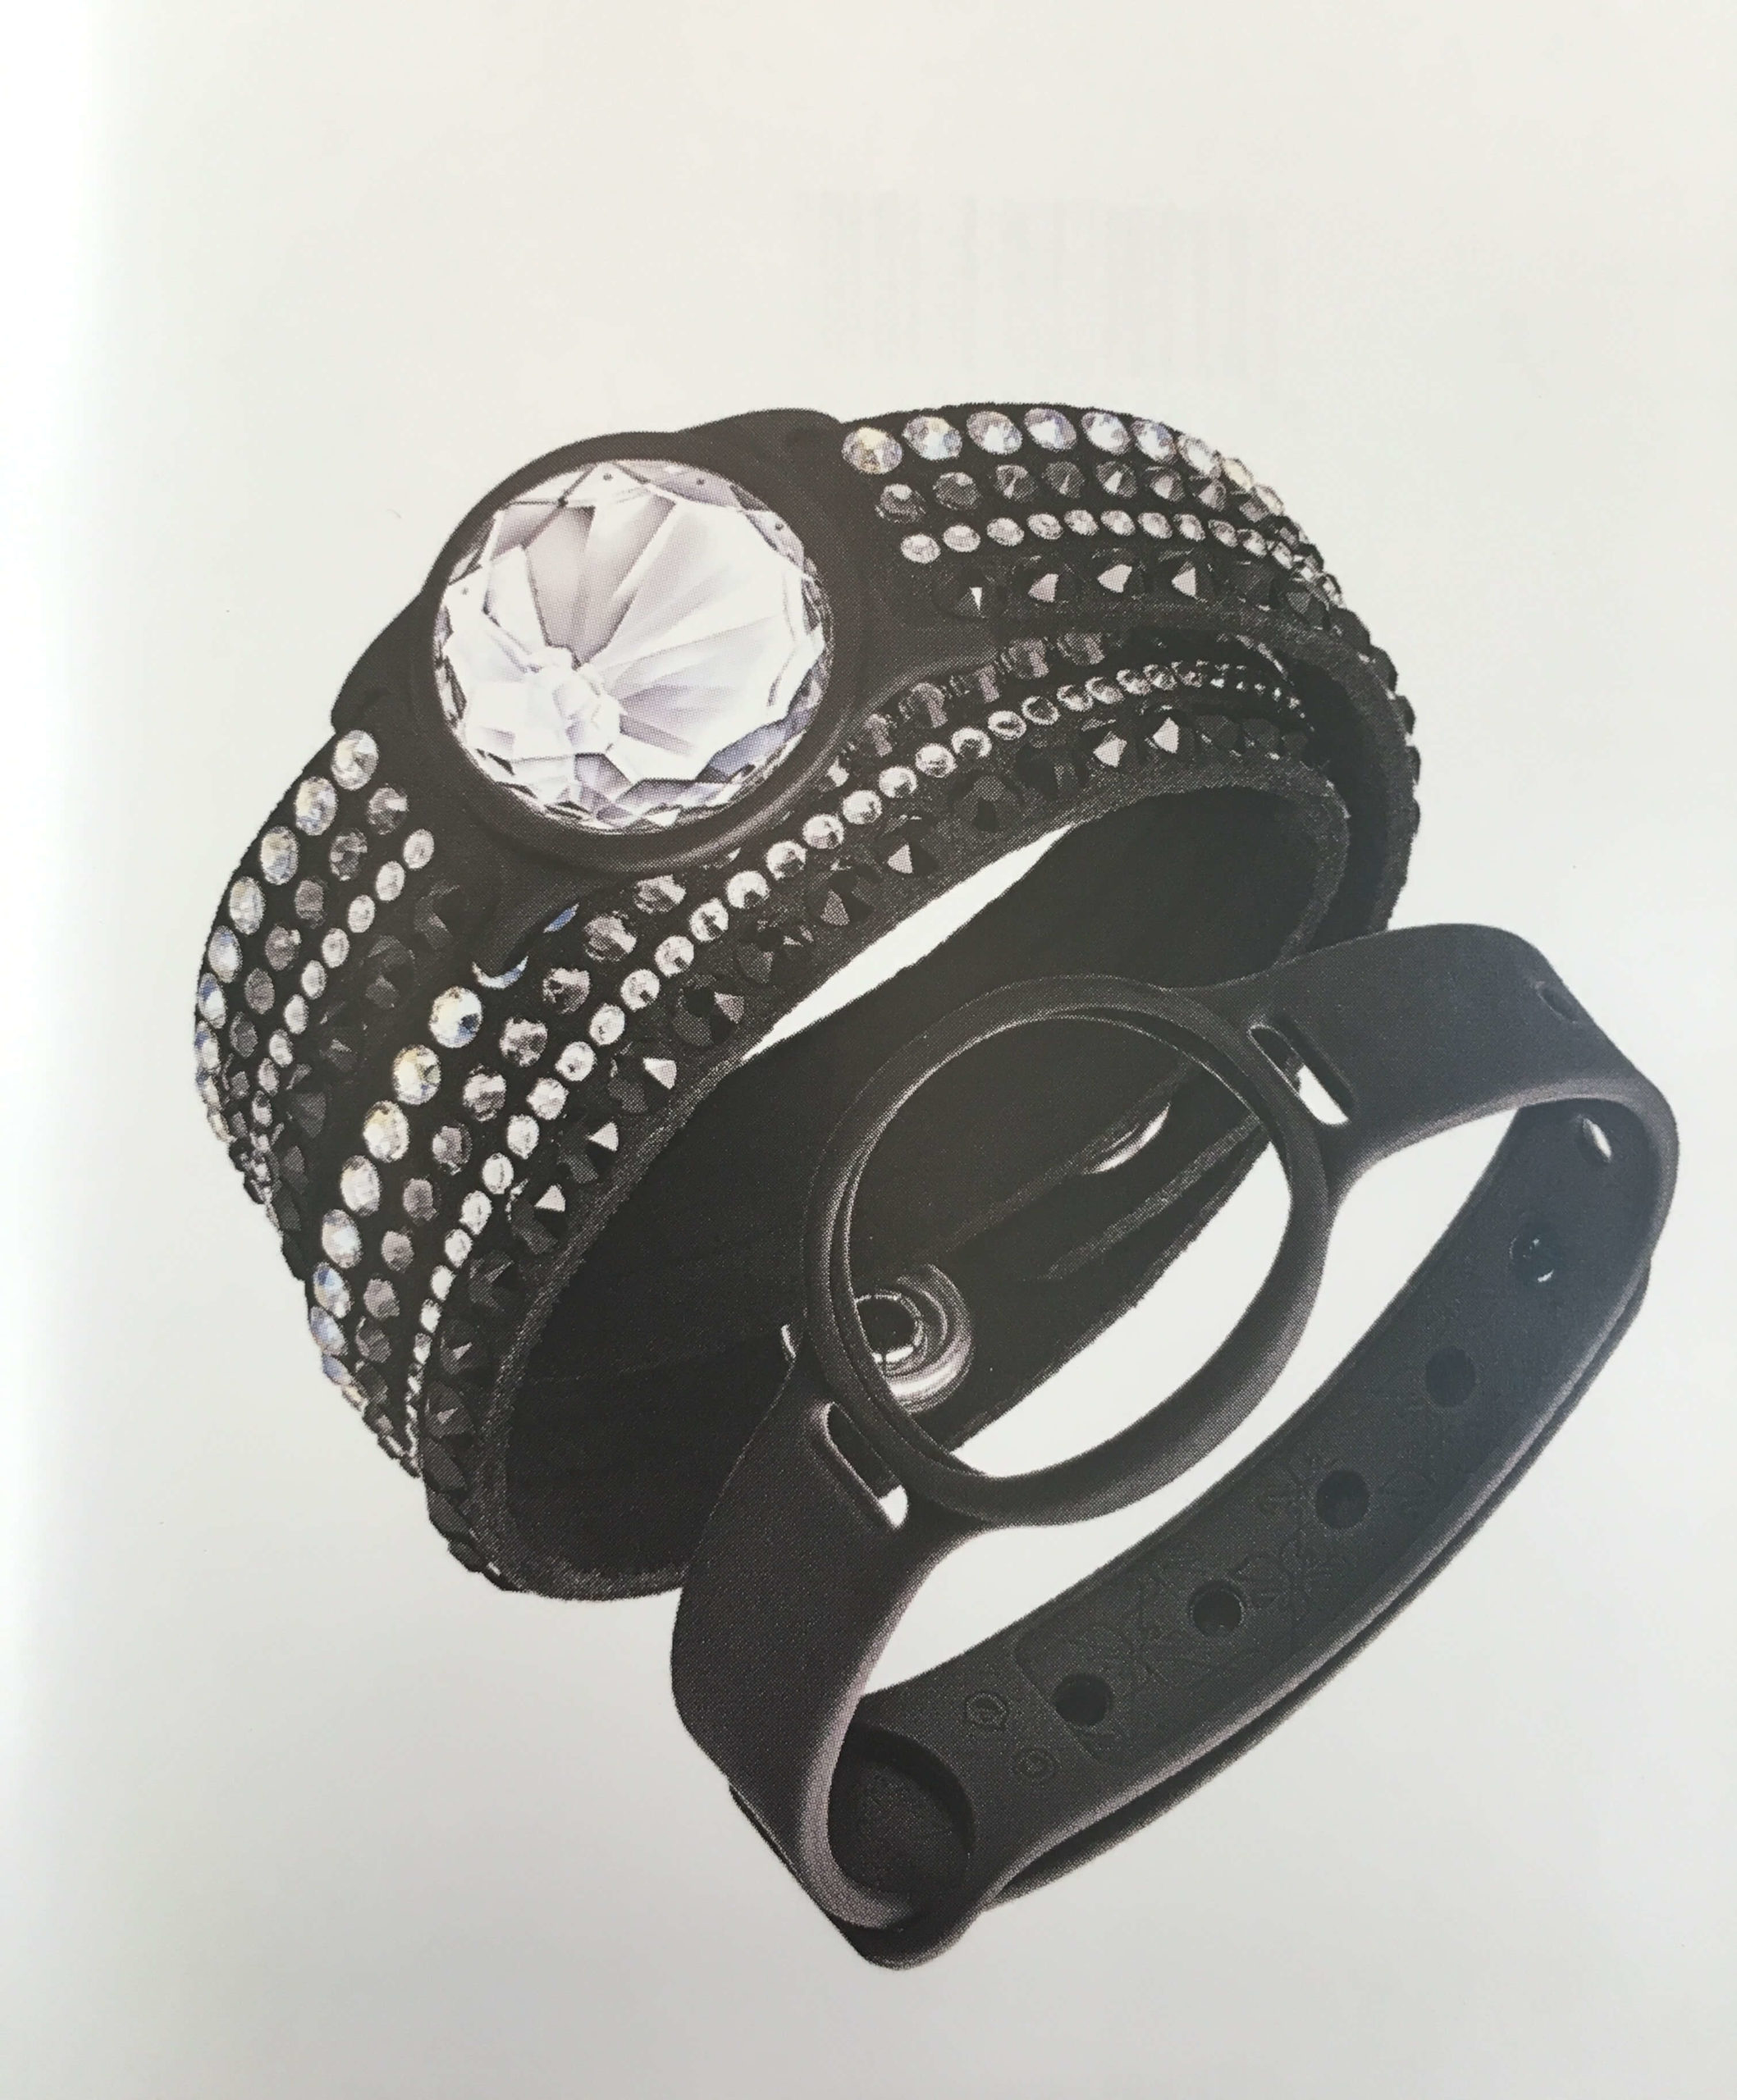 Swarovski Activity Tracker